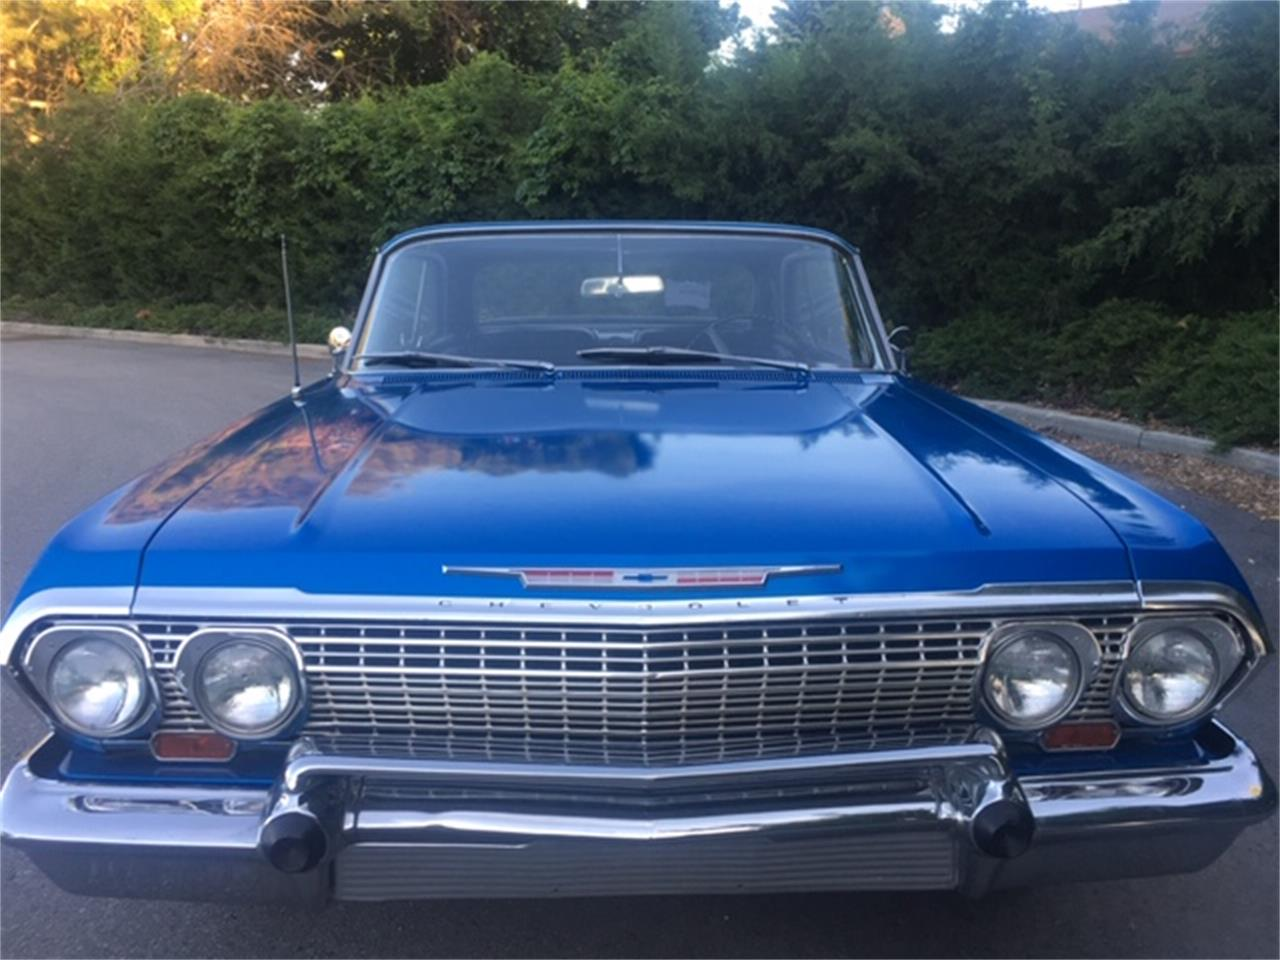 1963 Chevrolet Impala (CC-1218977) for sale in Boise, Idaho